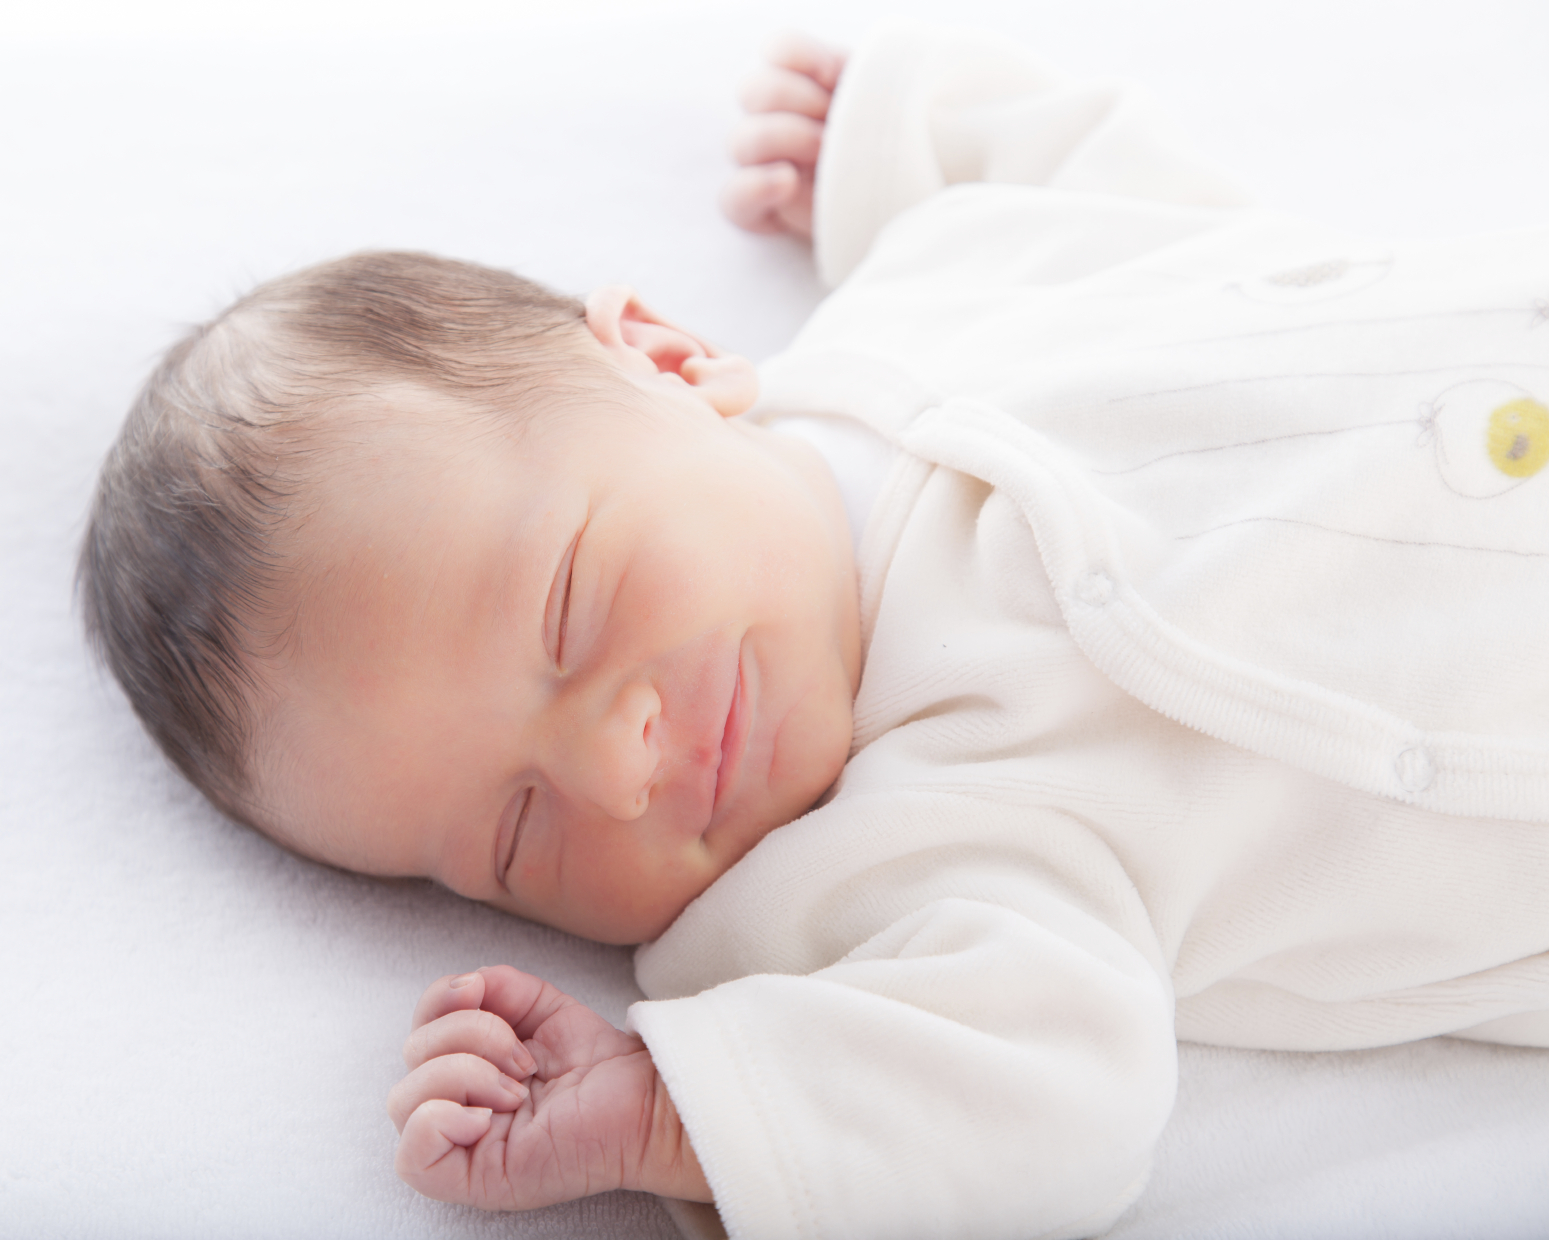 When should babies start sleeping in their own room